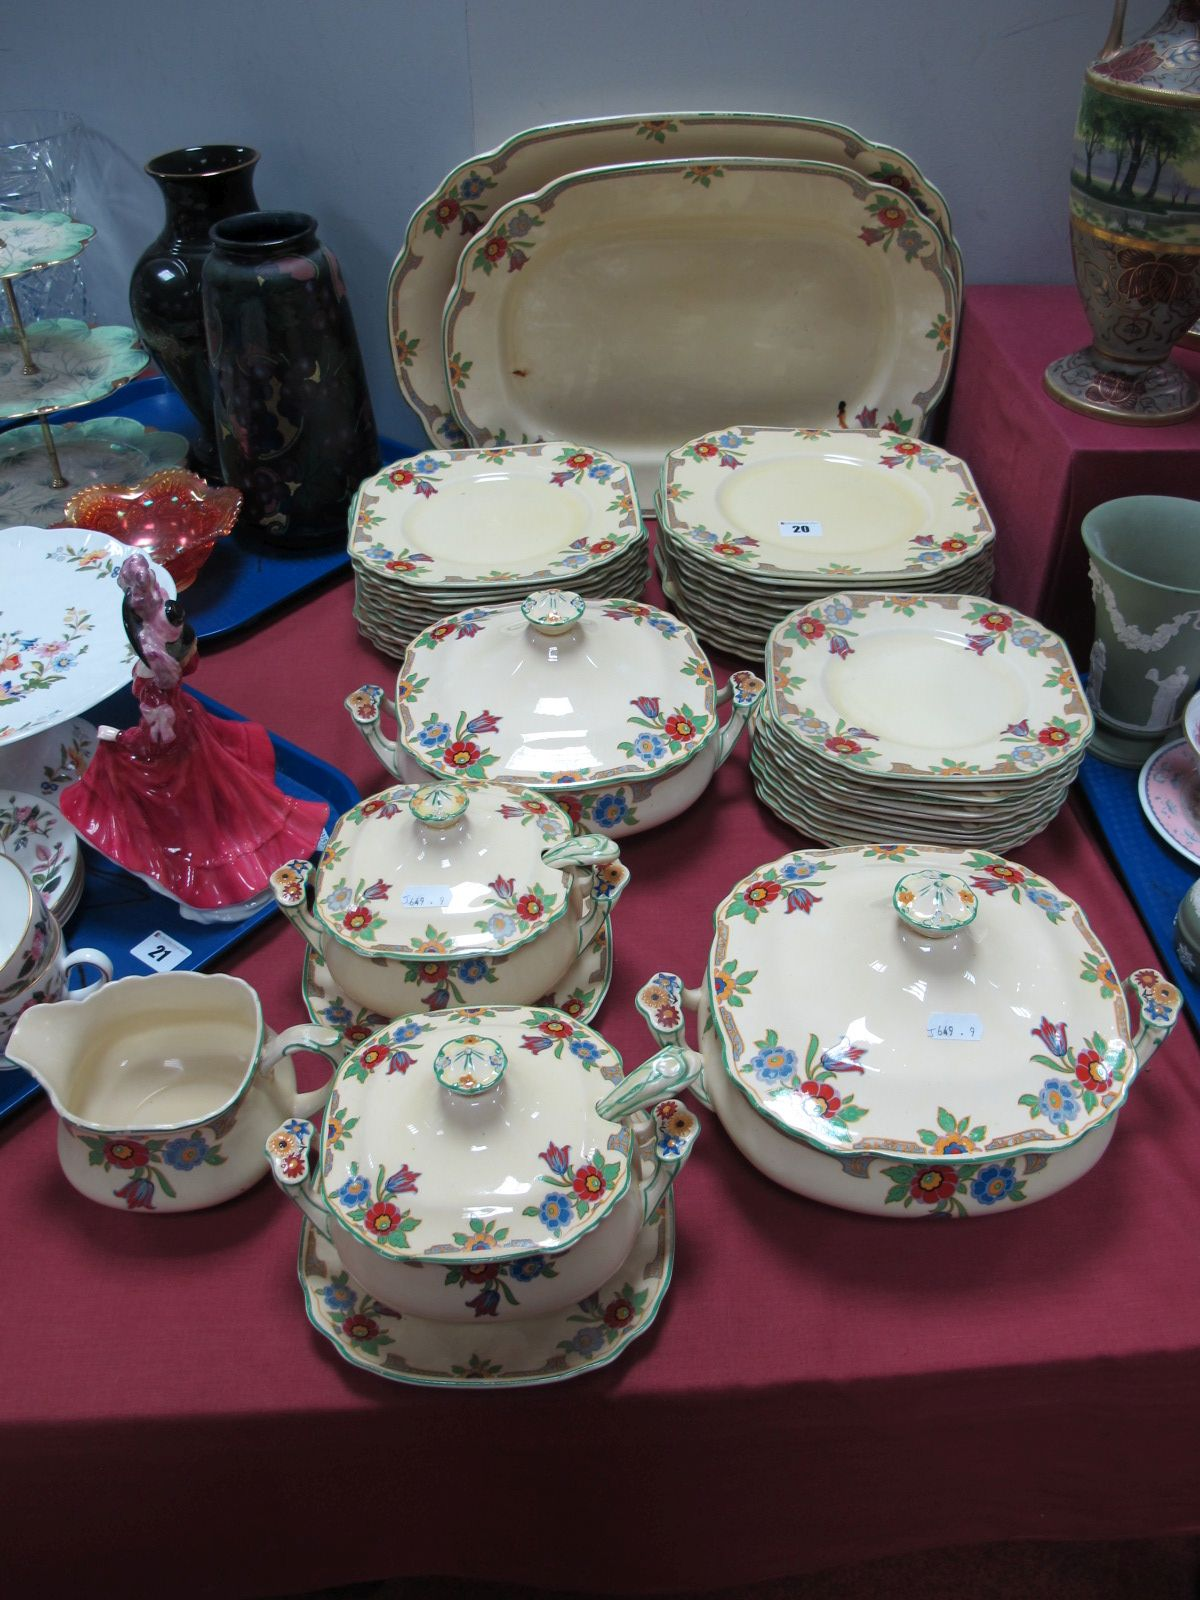 Lot 20 - A Wedgwood Imperial Porcelain Dinner Service, decorated with an Art Deco style stylised floral